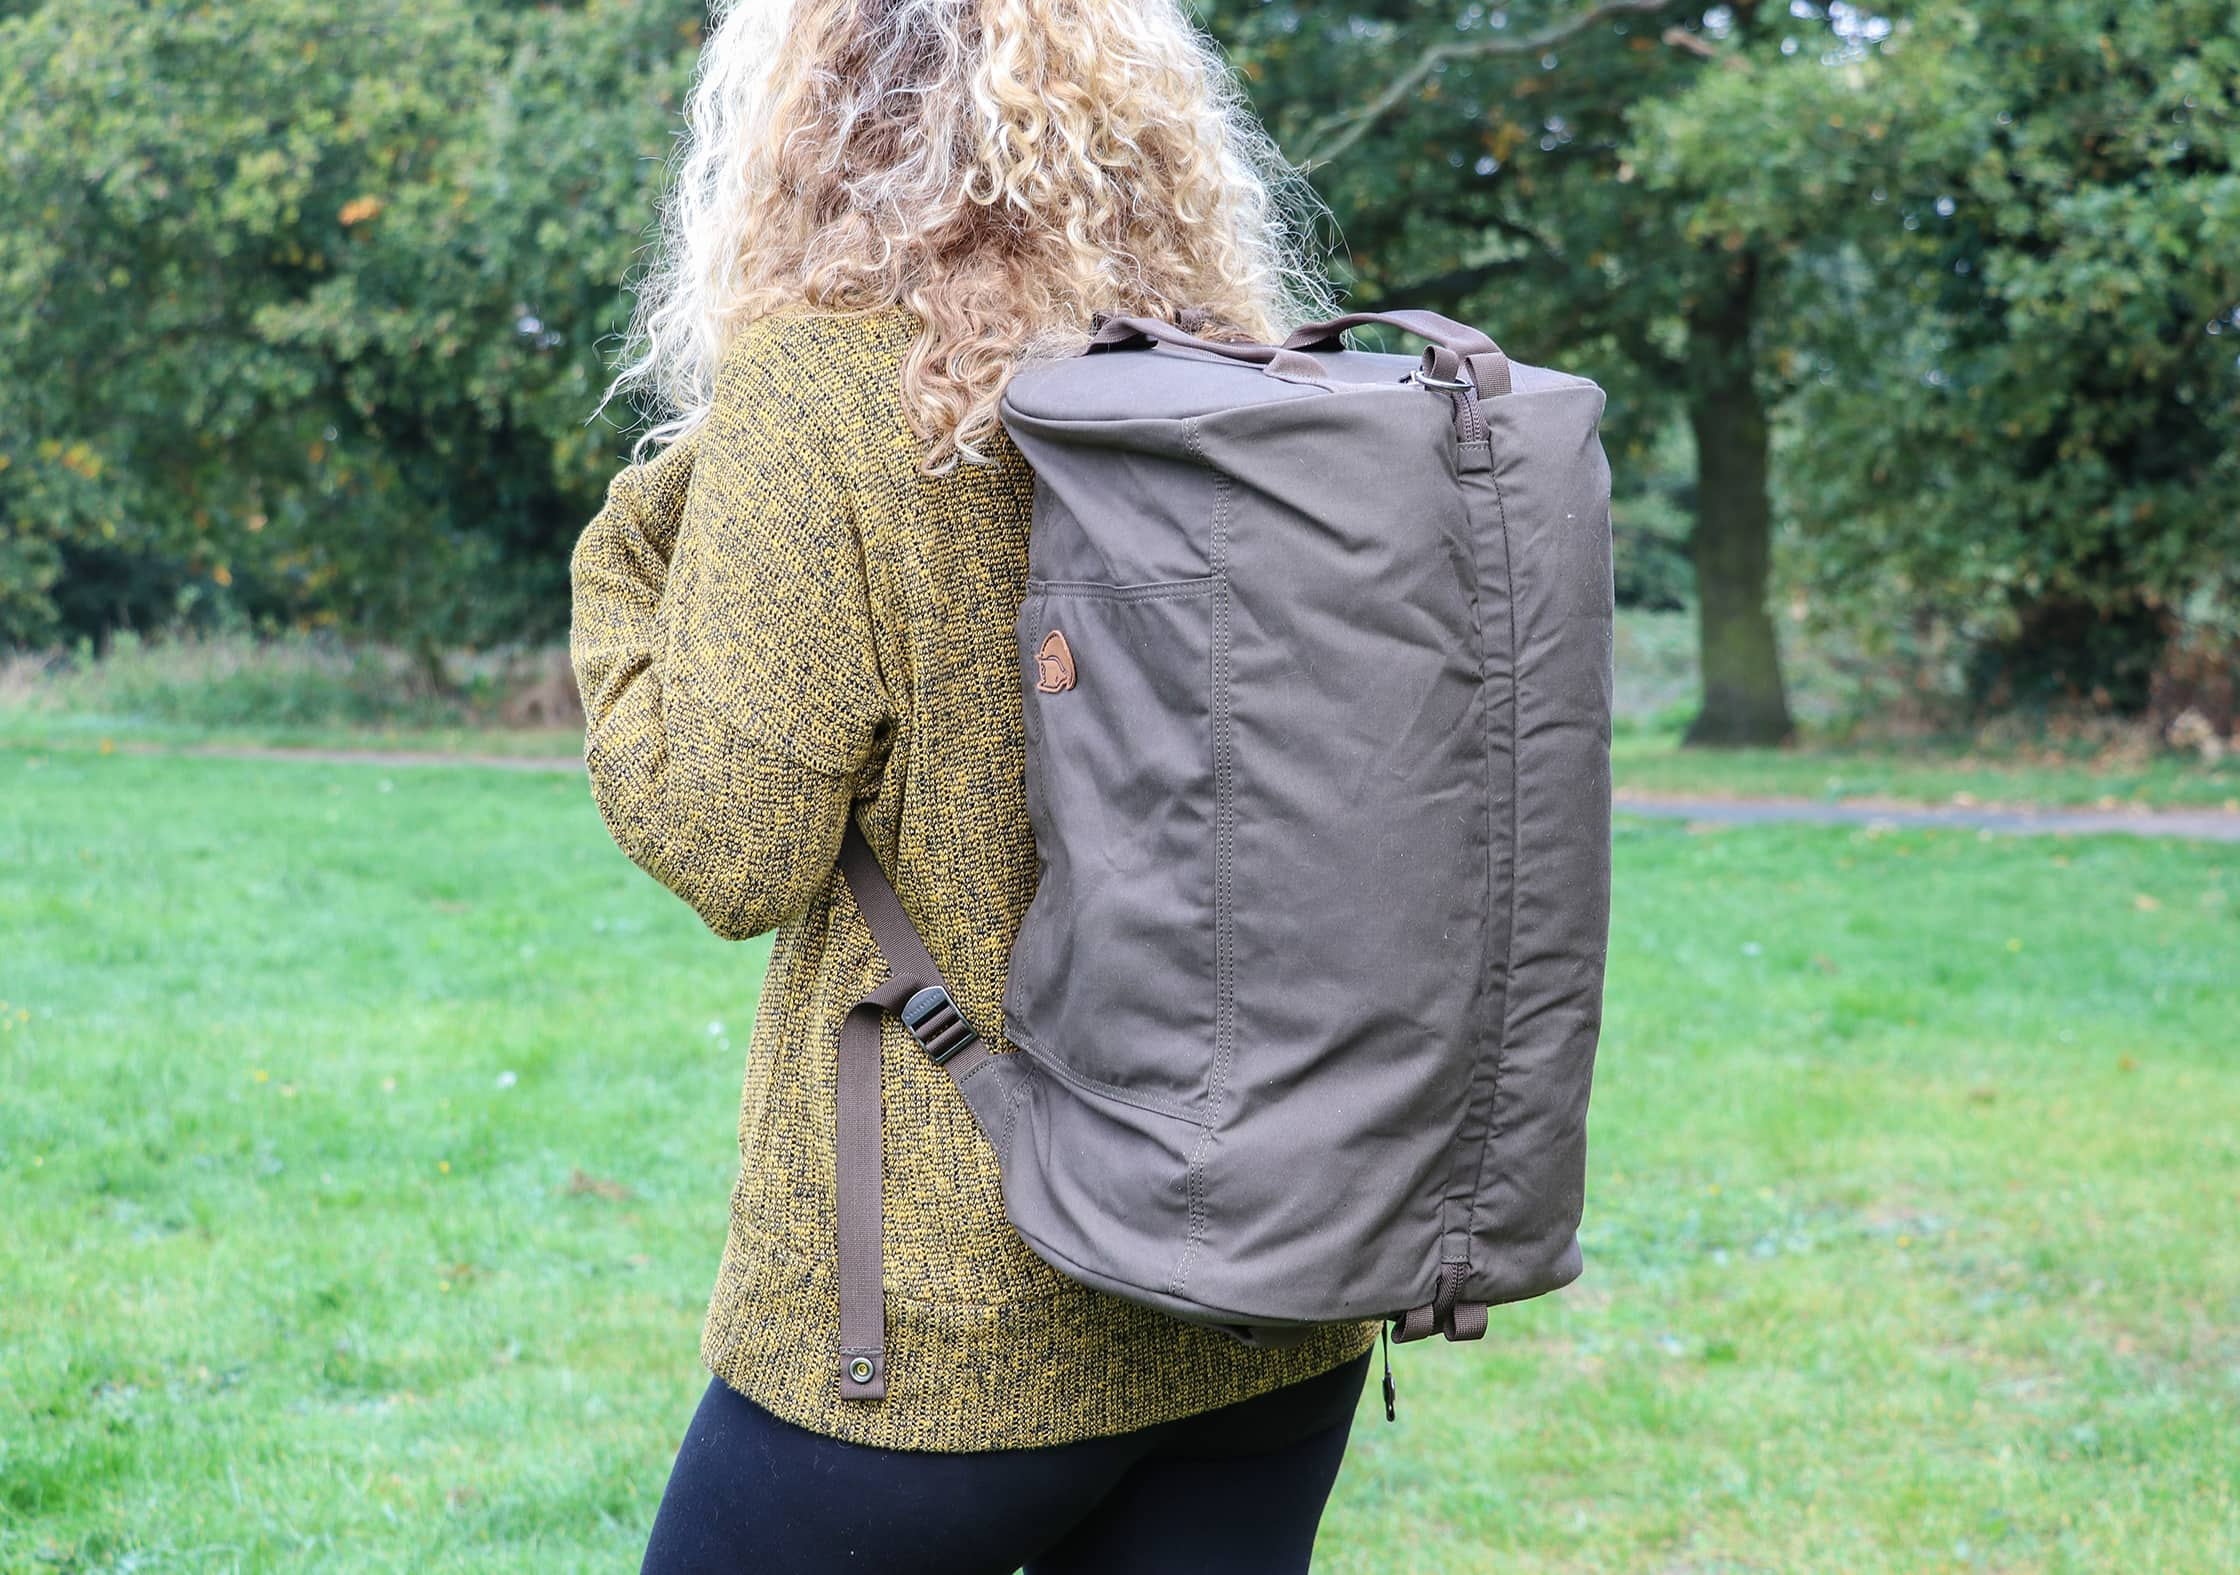 Fjallraven Splitpack In Essex, England